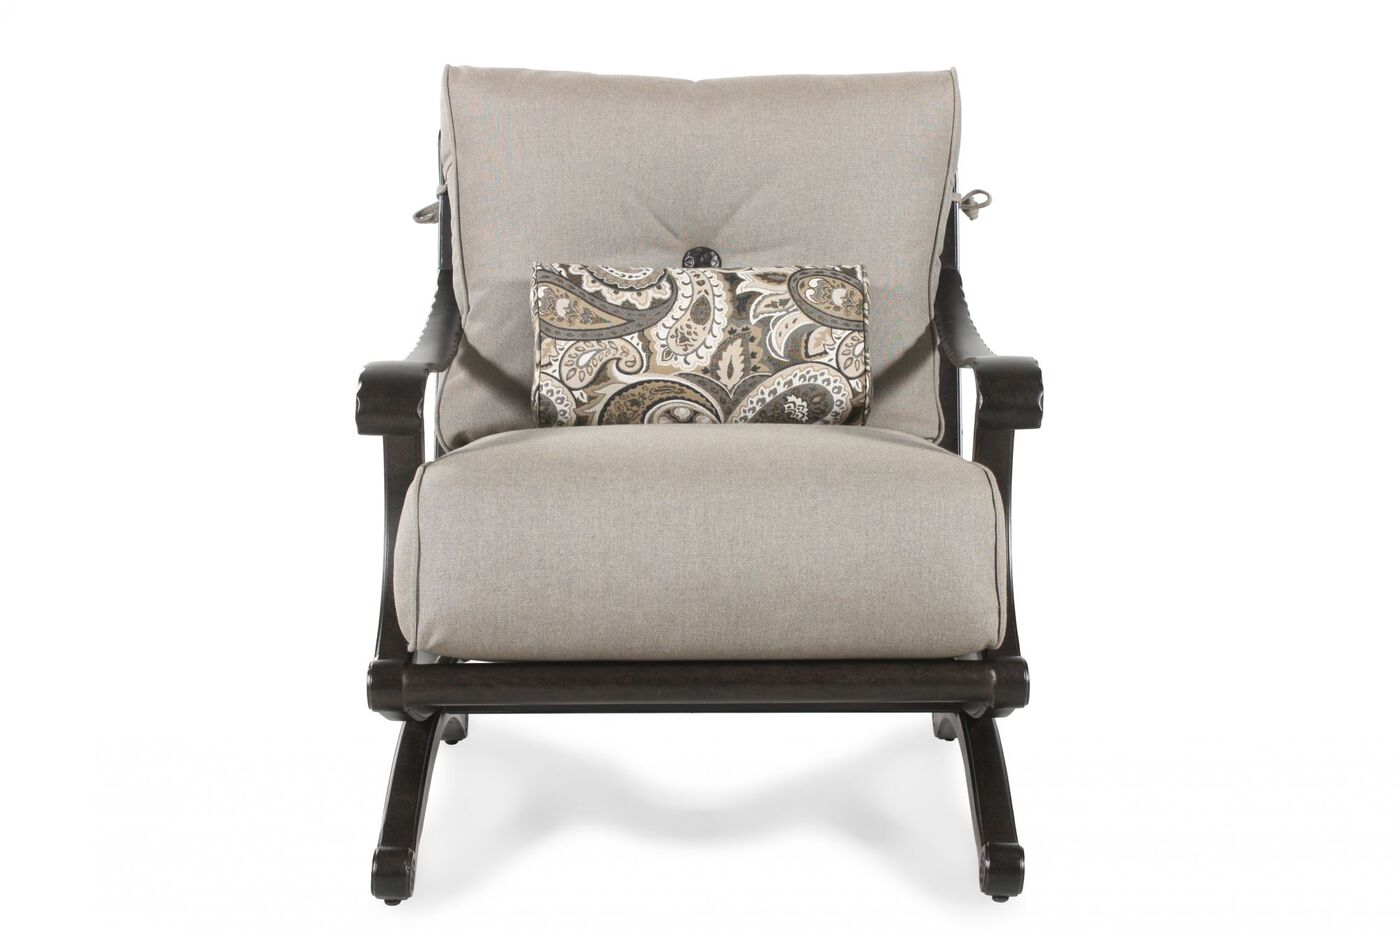 Castelle Telluride Patio Lounge Chair